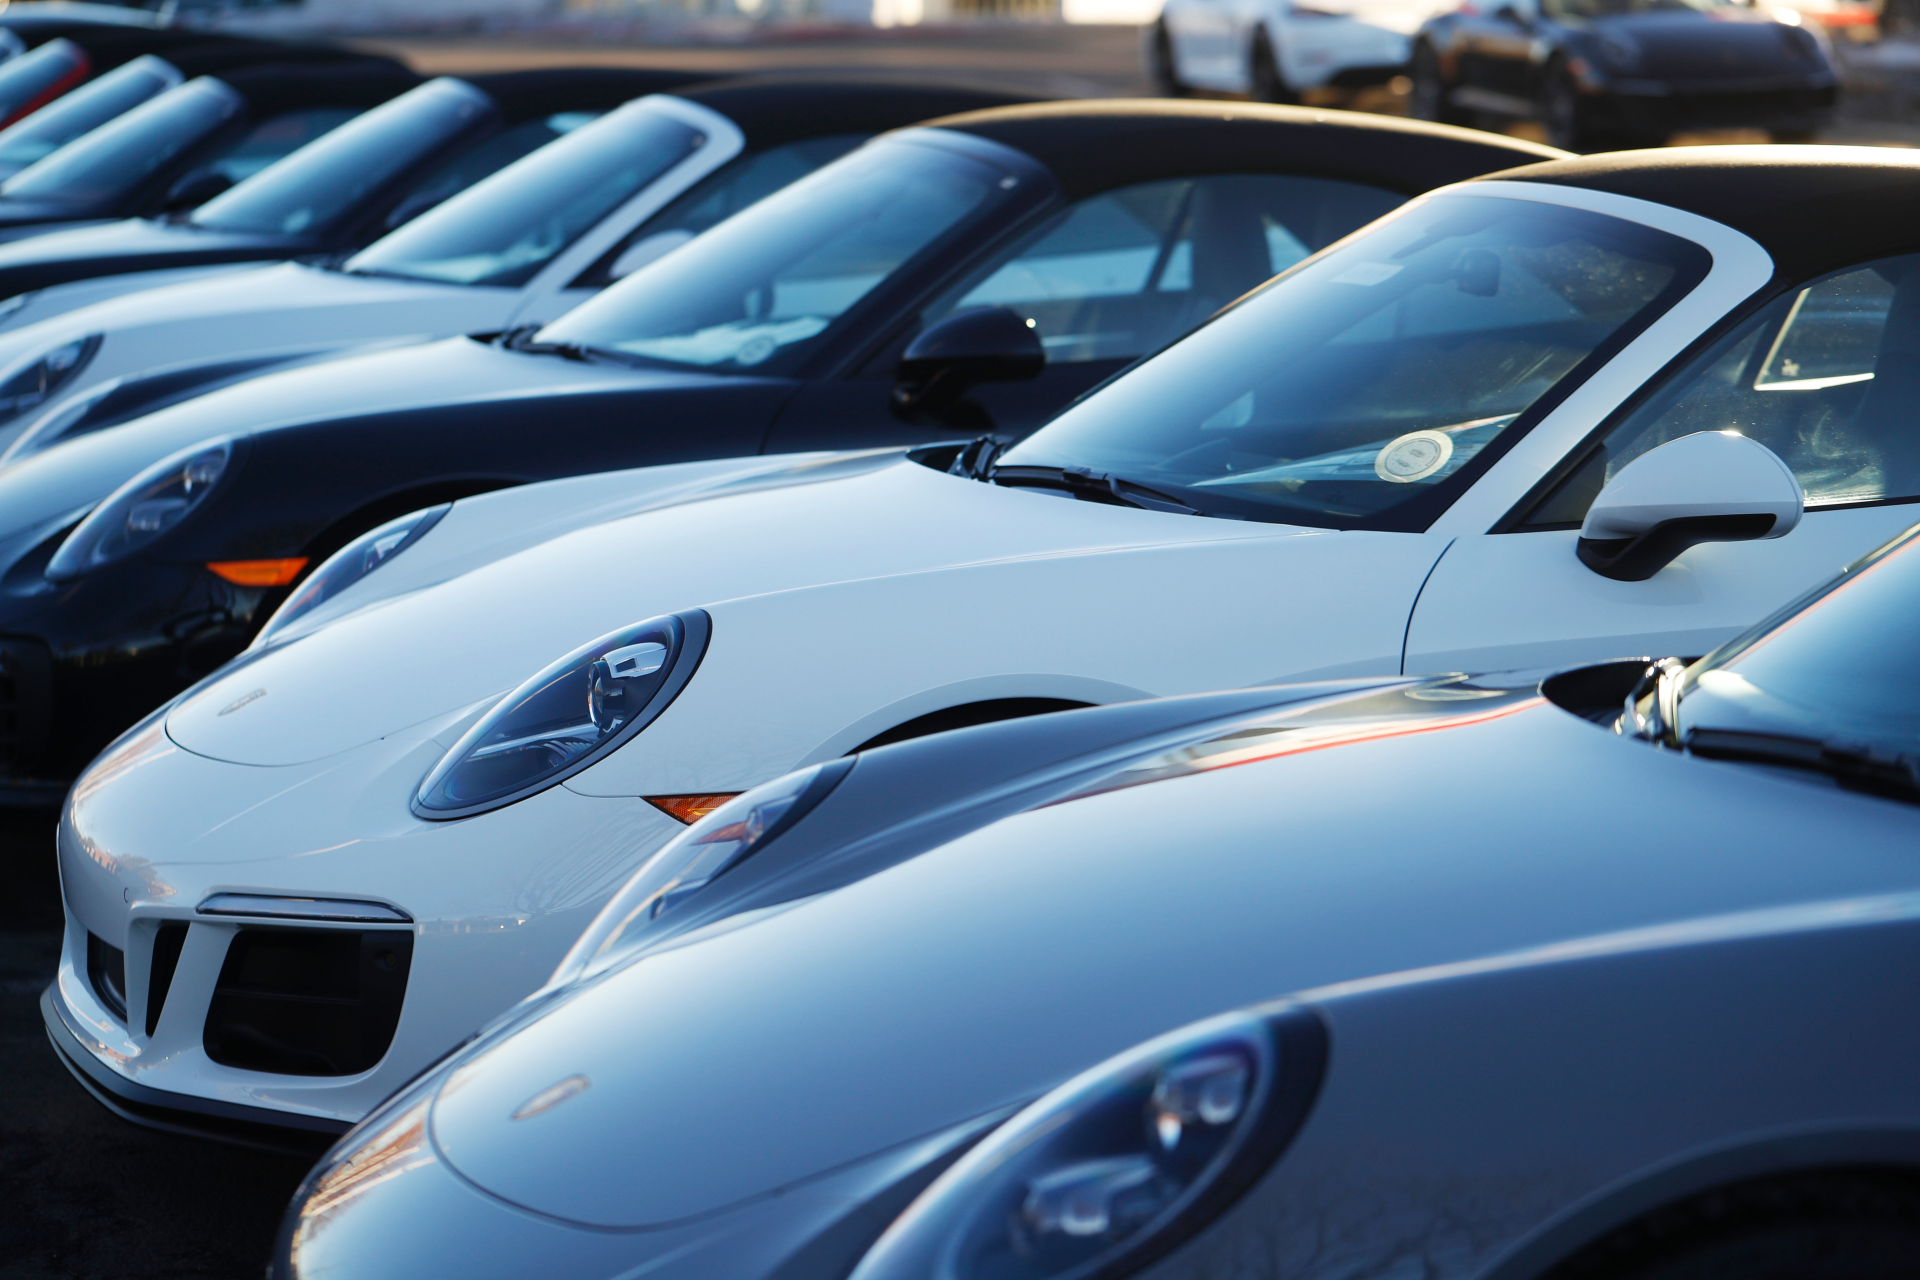 NY Fed: Auto loan delinquencies at highest point since 2010